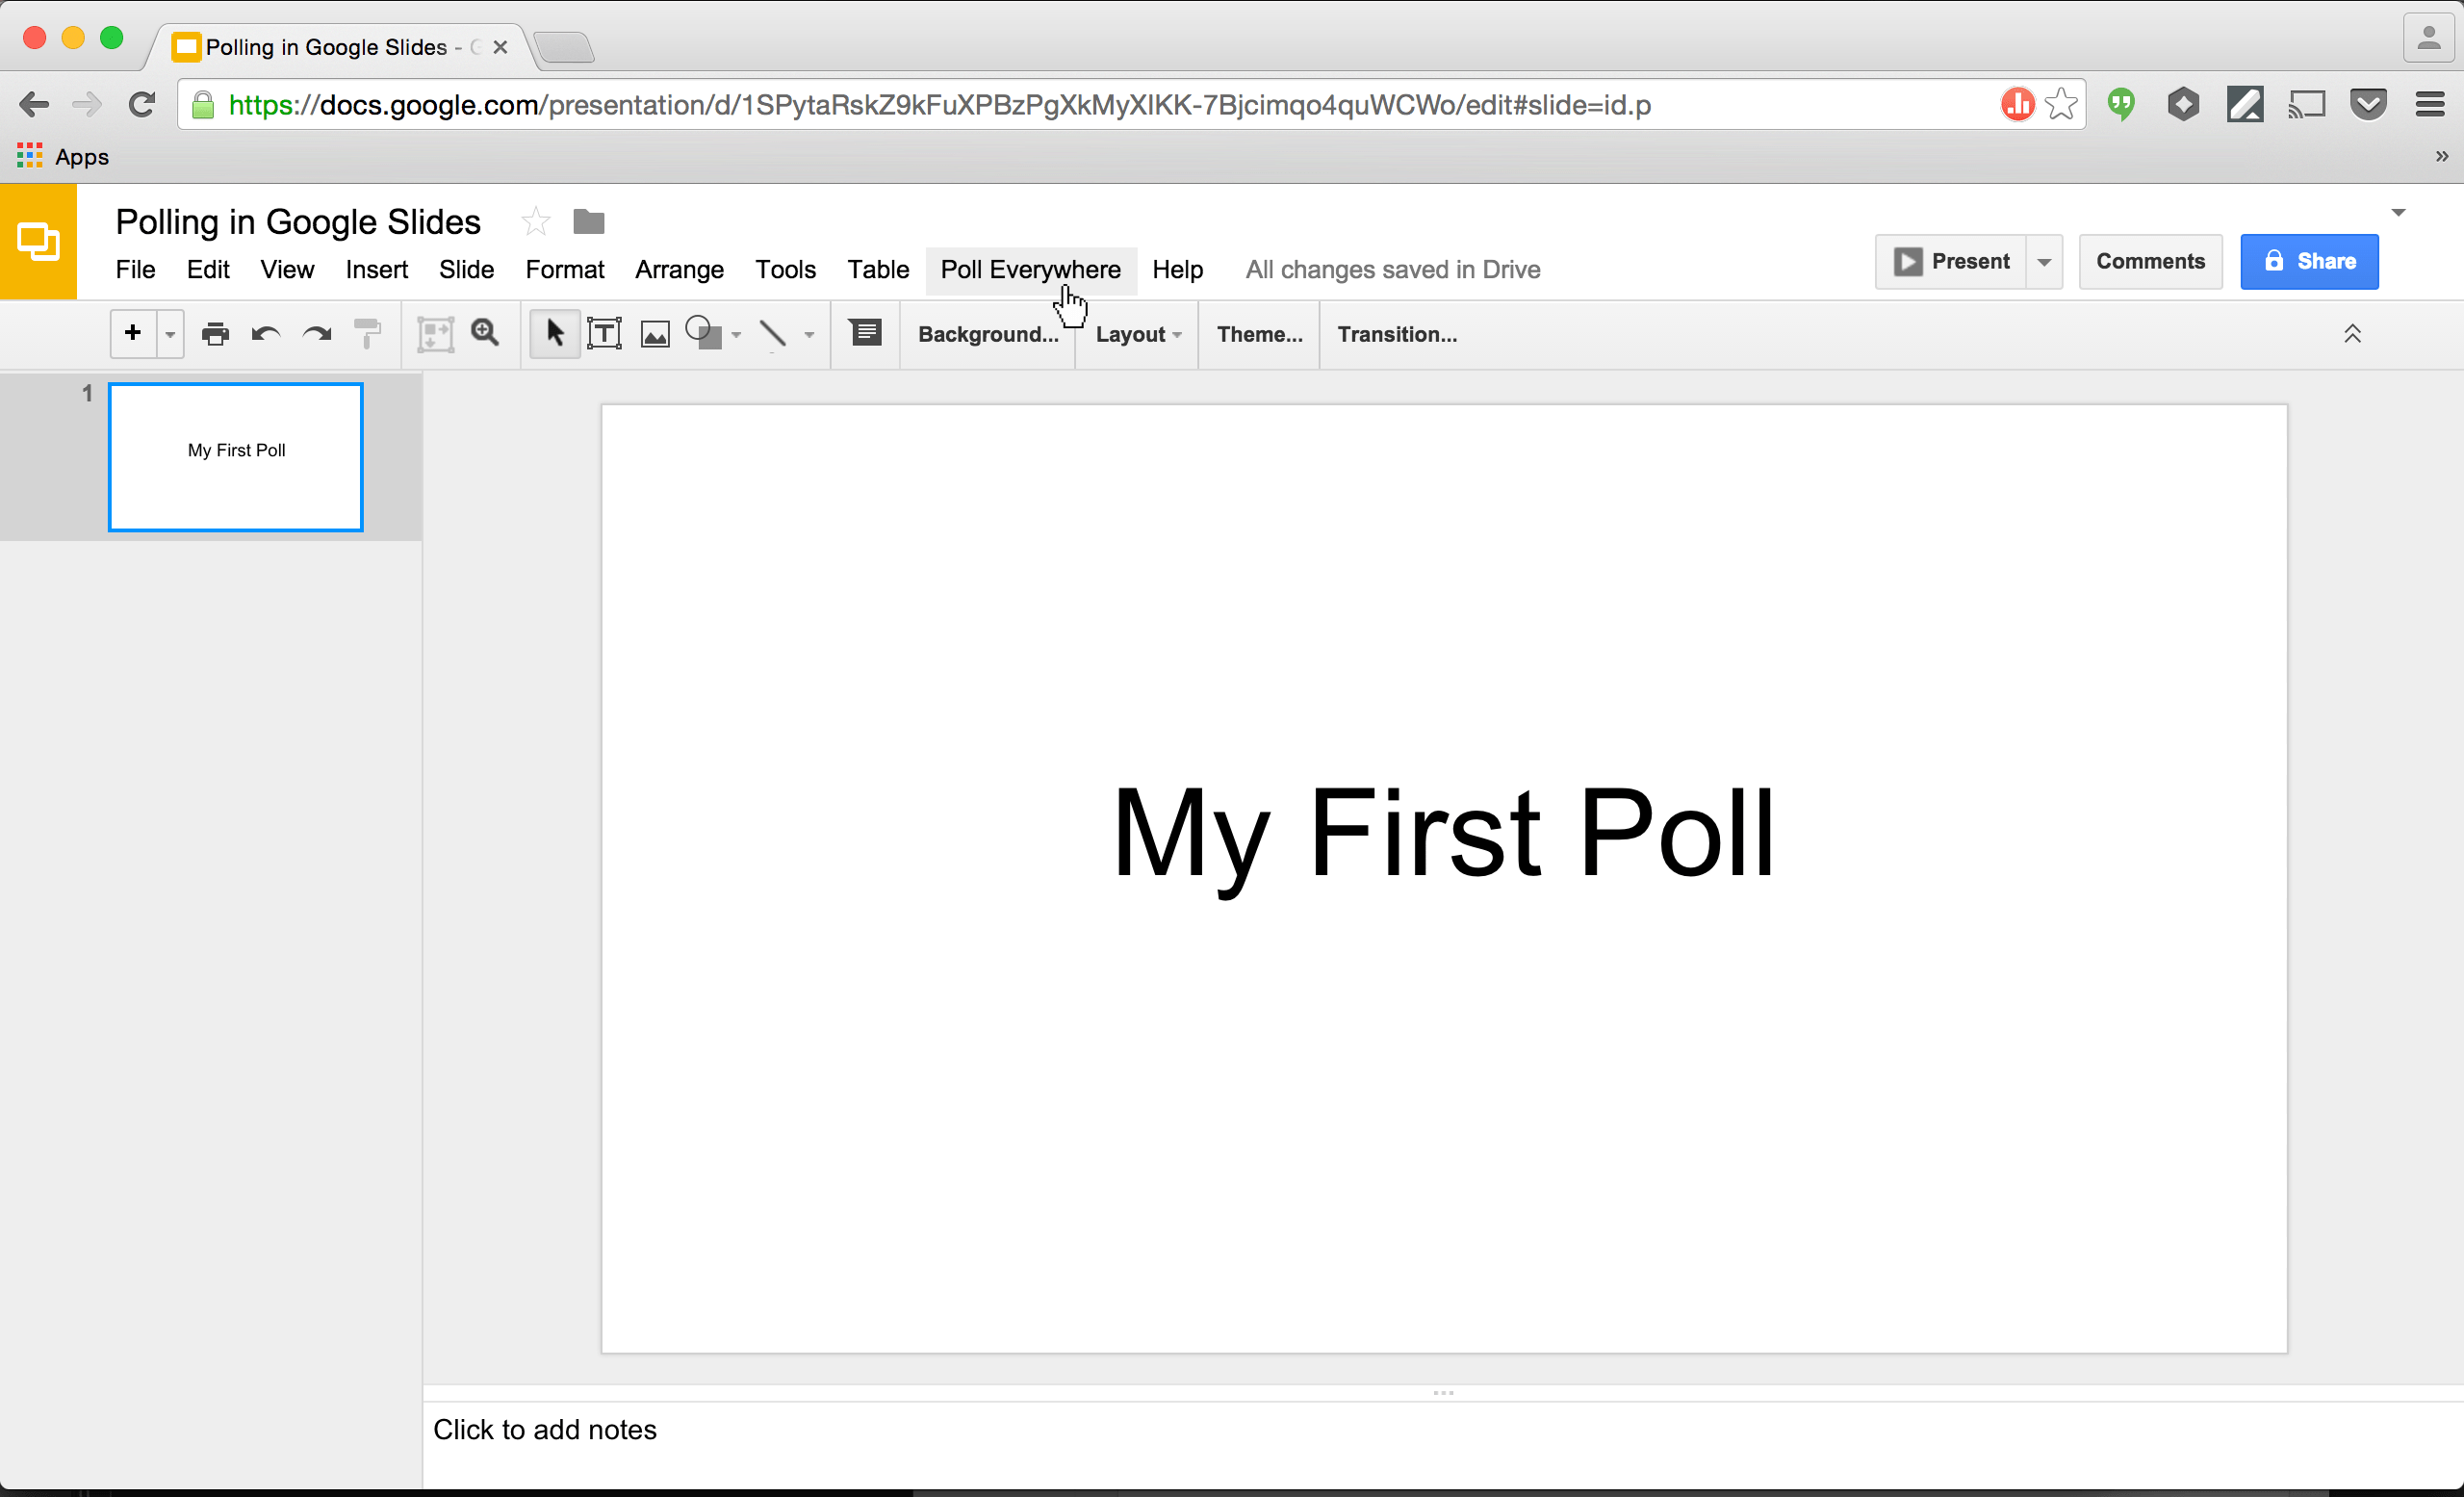 PollEv Presenter in Chrome Store: click Poll Everywhere tab